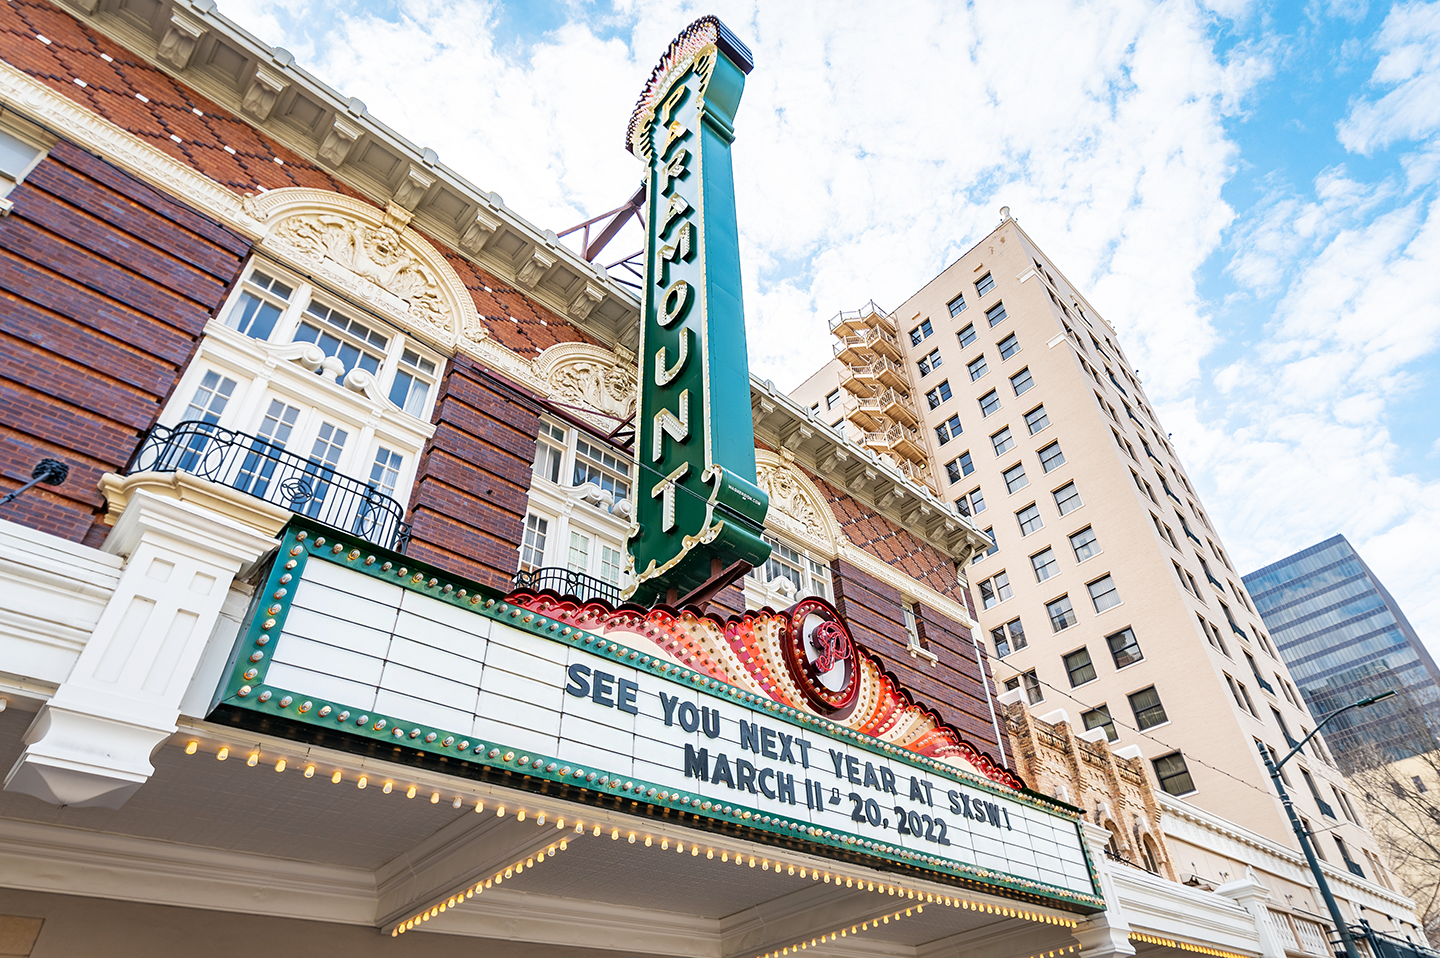 2022 SXSW Dates on Paramount Marquee - Photo By Ann Alva Wieding